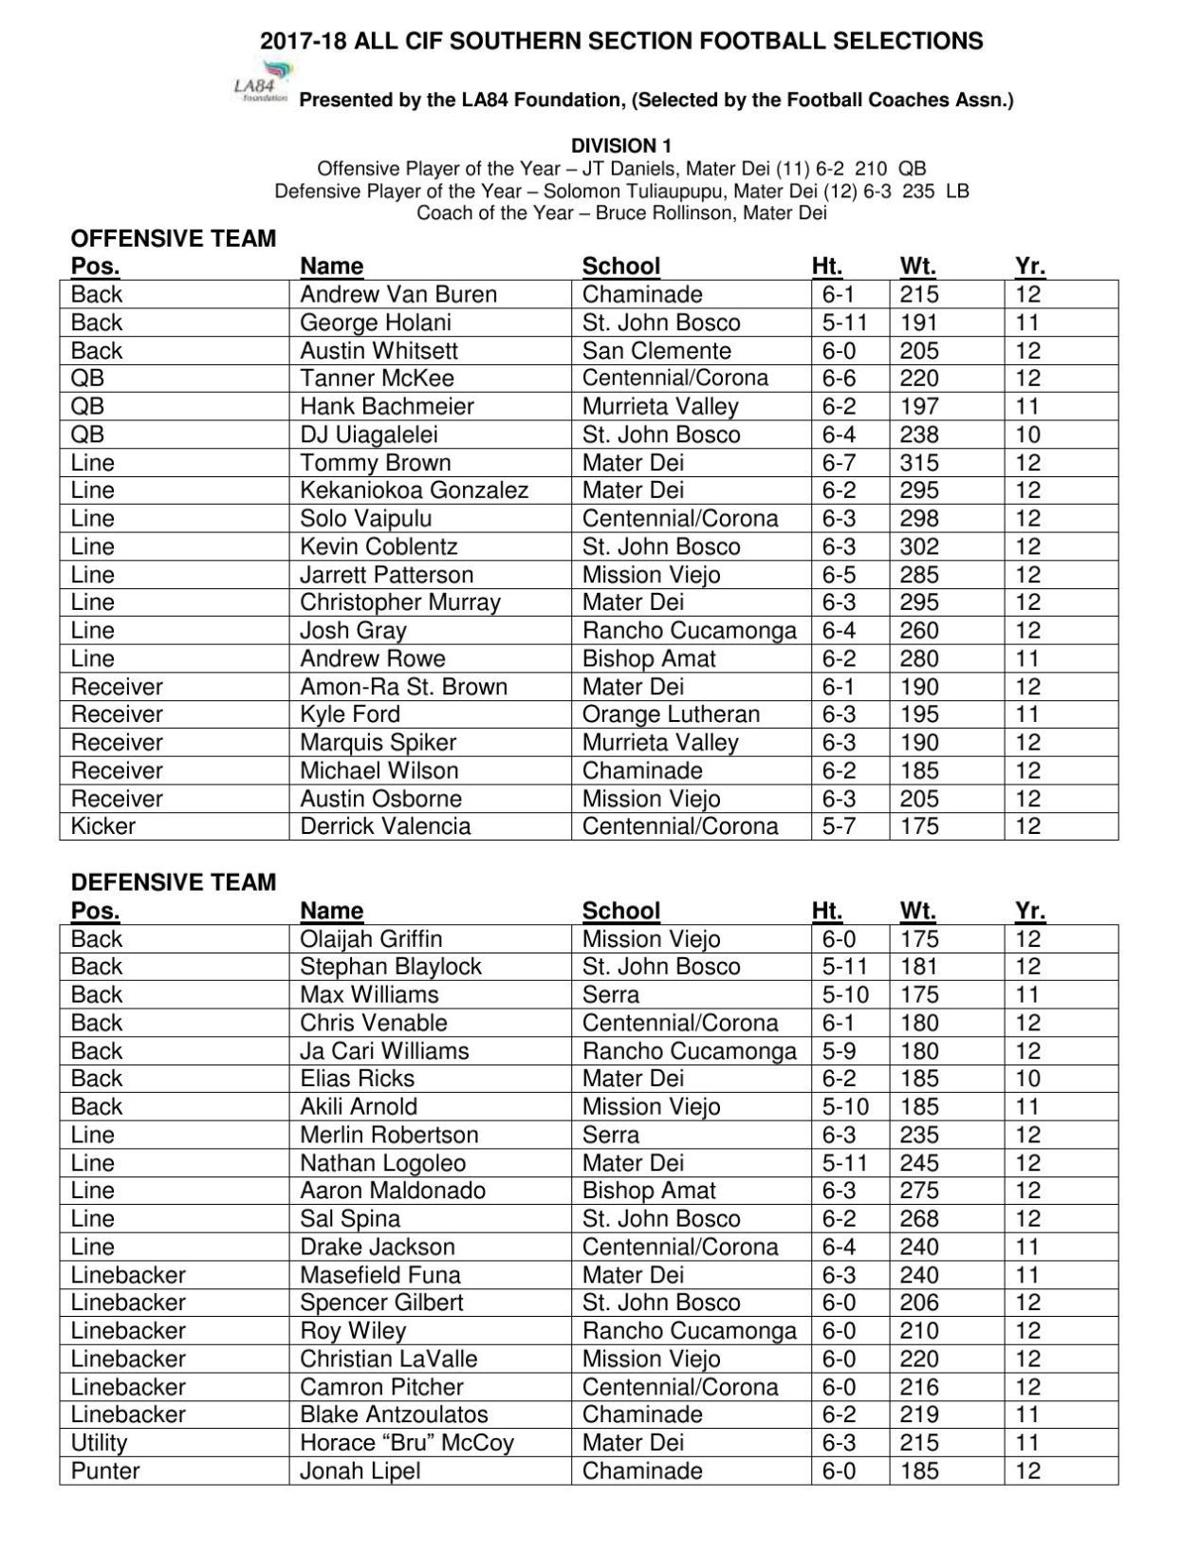 2017 ALL CIF FOOTBALL.pdf